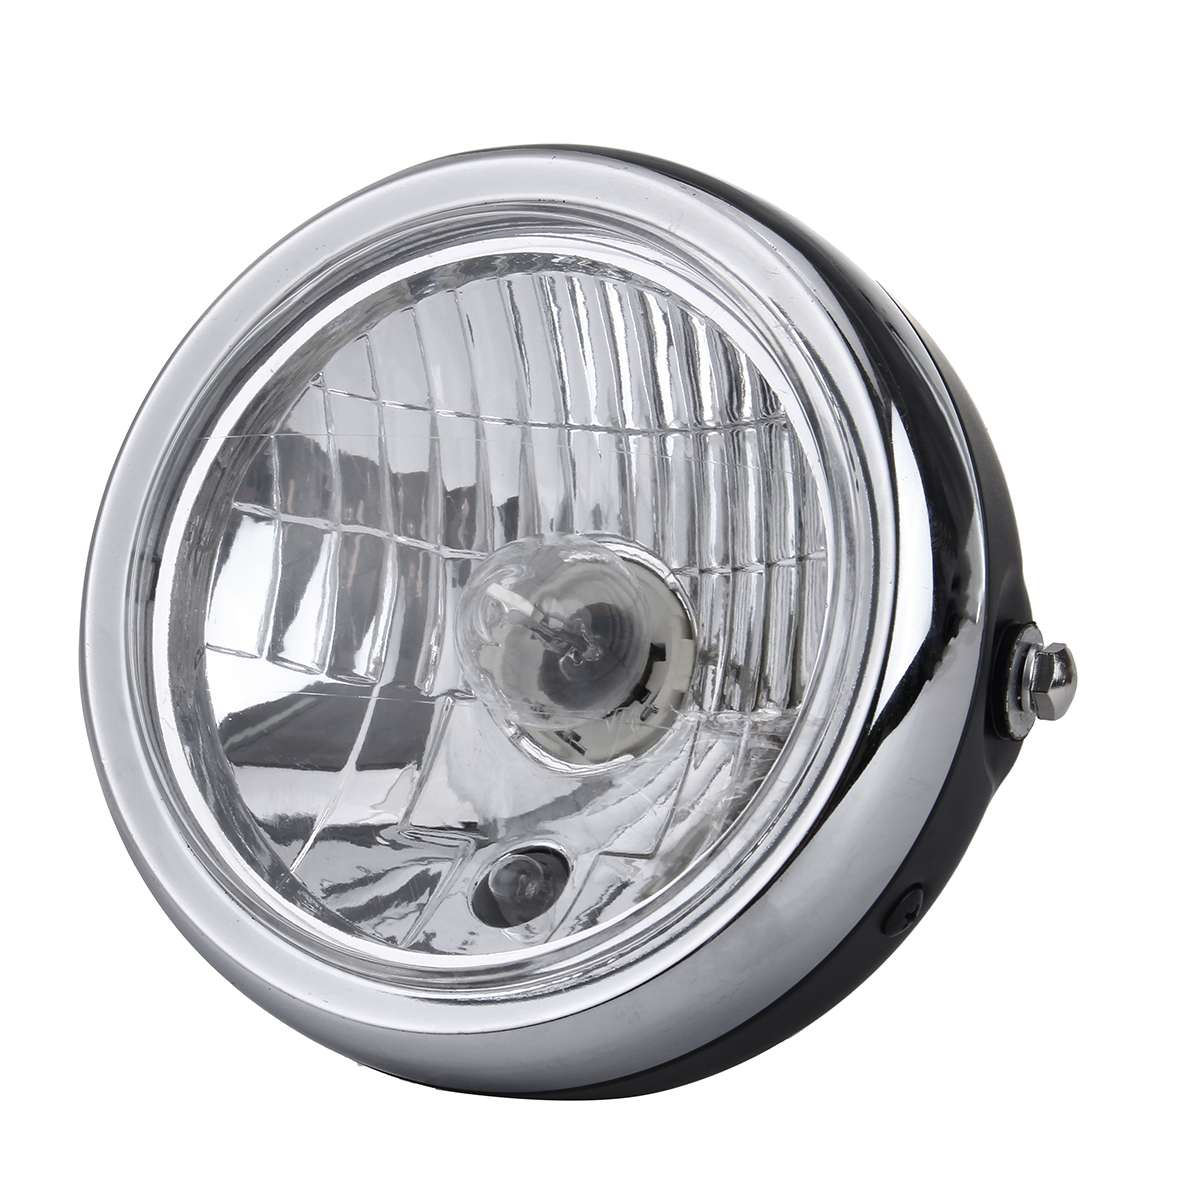 Retro Metal 6 Inch 35W 12V Universal Motorcycle Headlight H4 HID Hi/Lo Beam Light Lamp Fog Lamp Side Mount Round Motor Headlamp